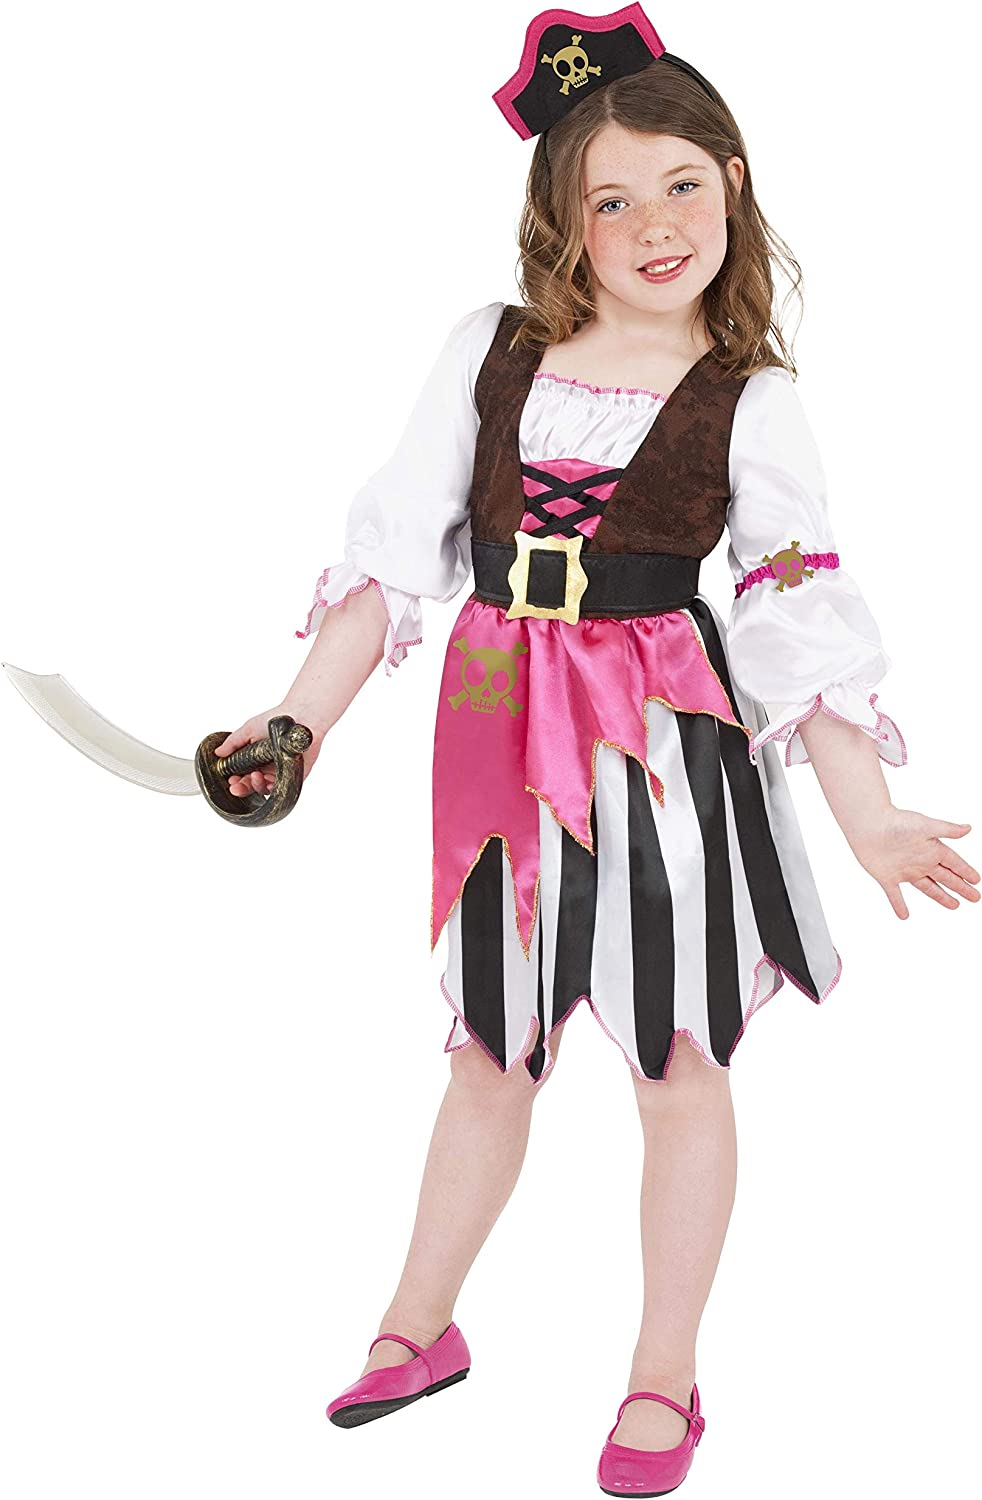 Smiffys Pirate Girl Costume, pink, Medium